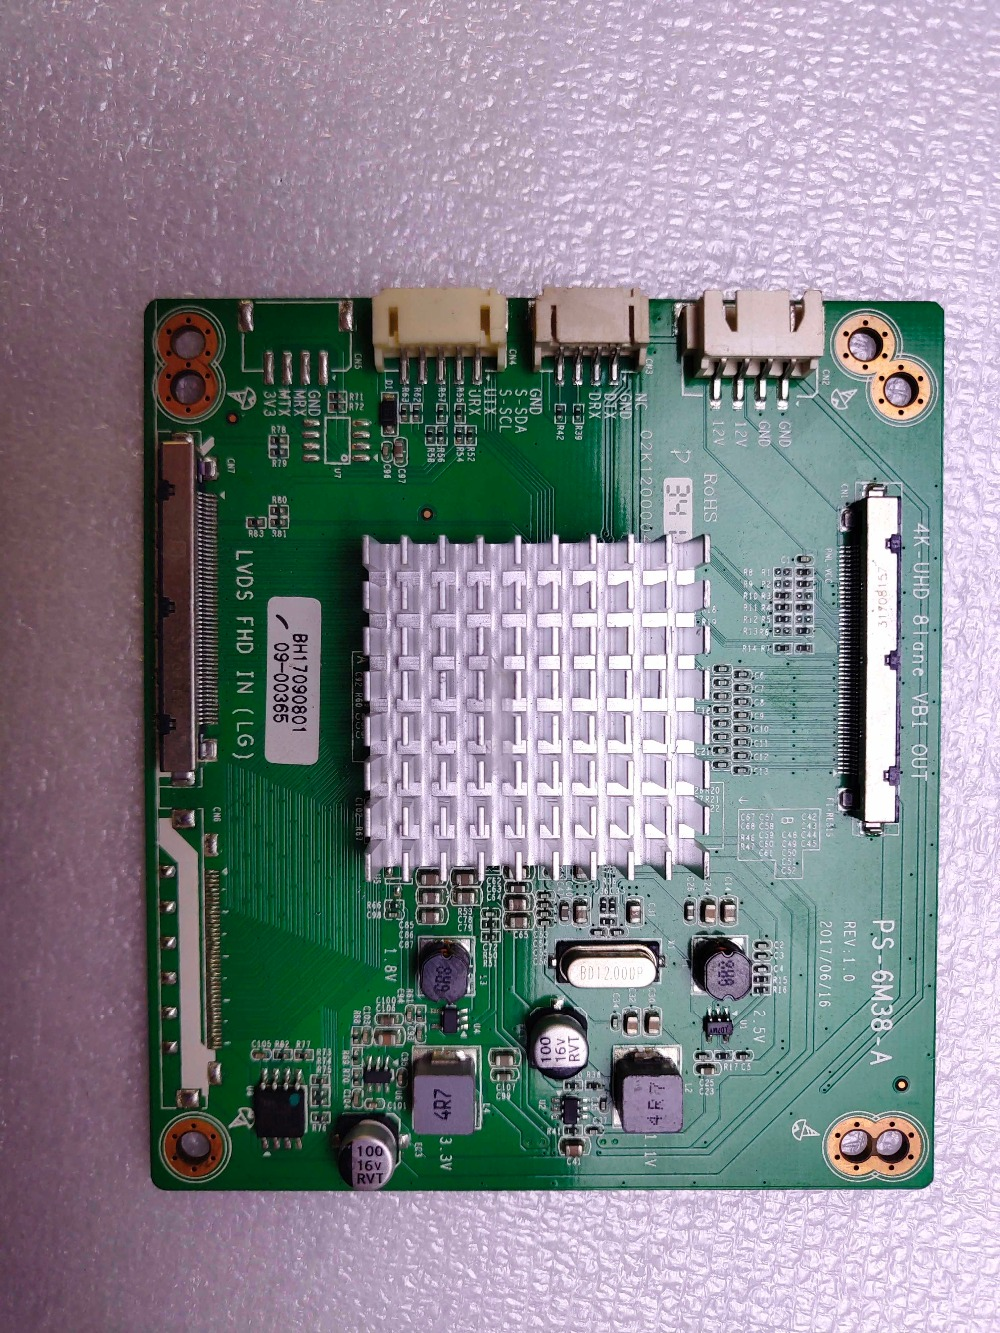 PS-6M38-A/PS-7233-B Good Working TestedPS-6M38-A/PS-7233-B Good Working Tested